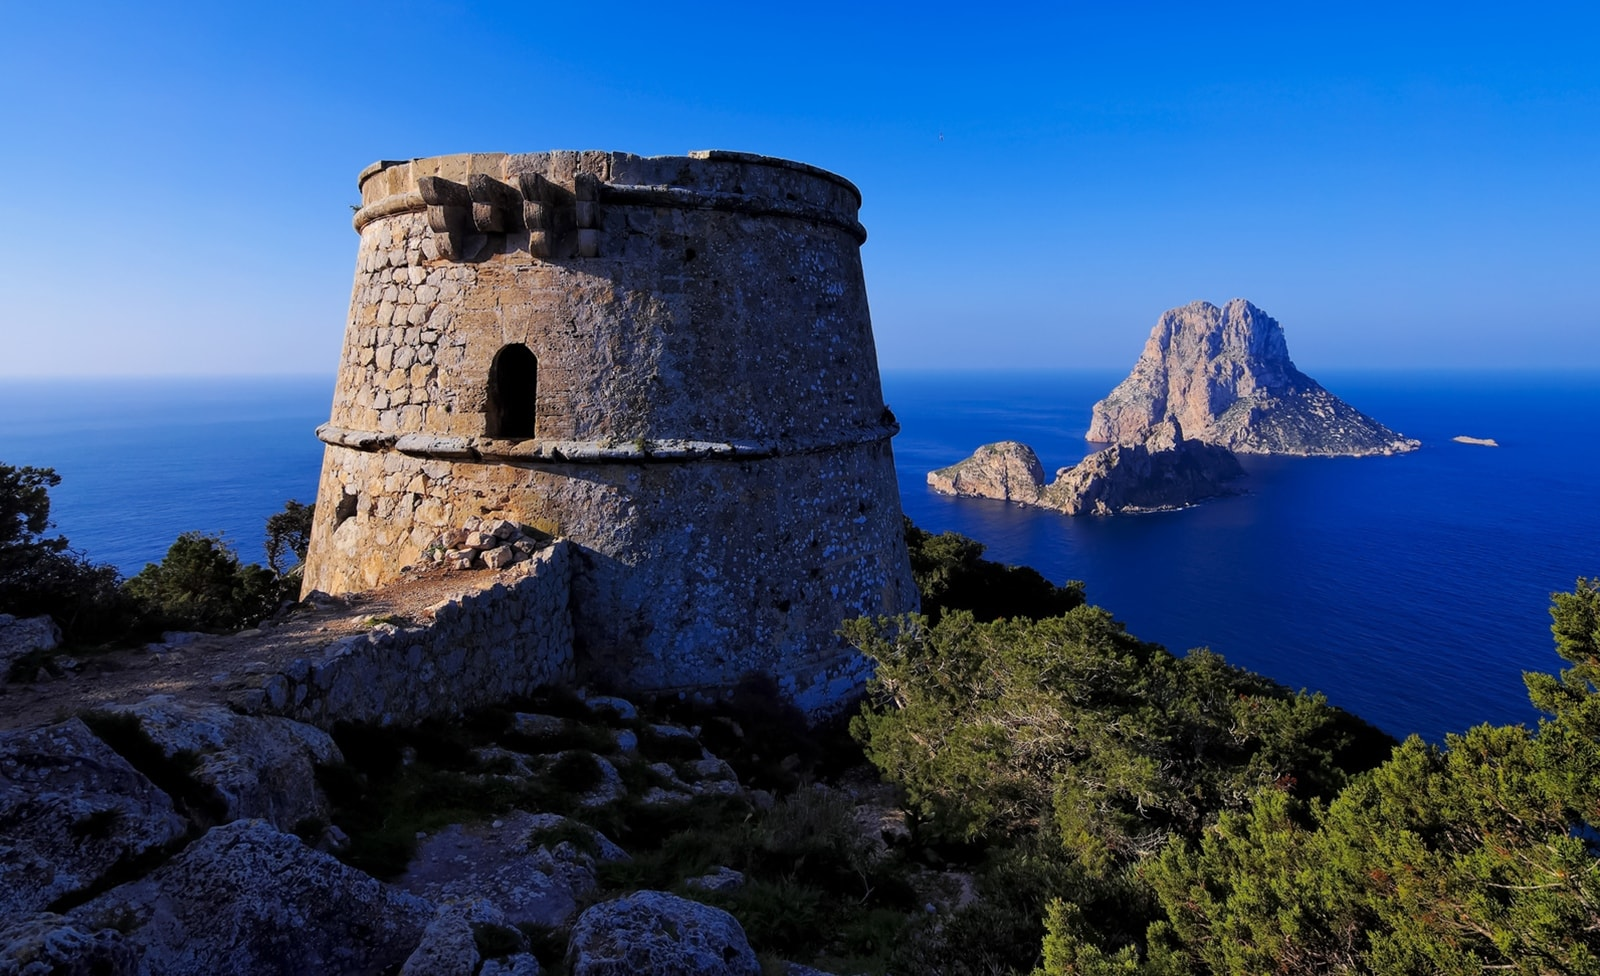 Piratenturm auf Ibiza